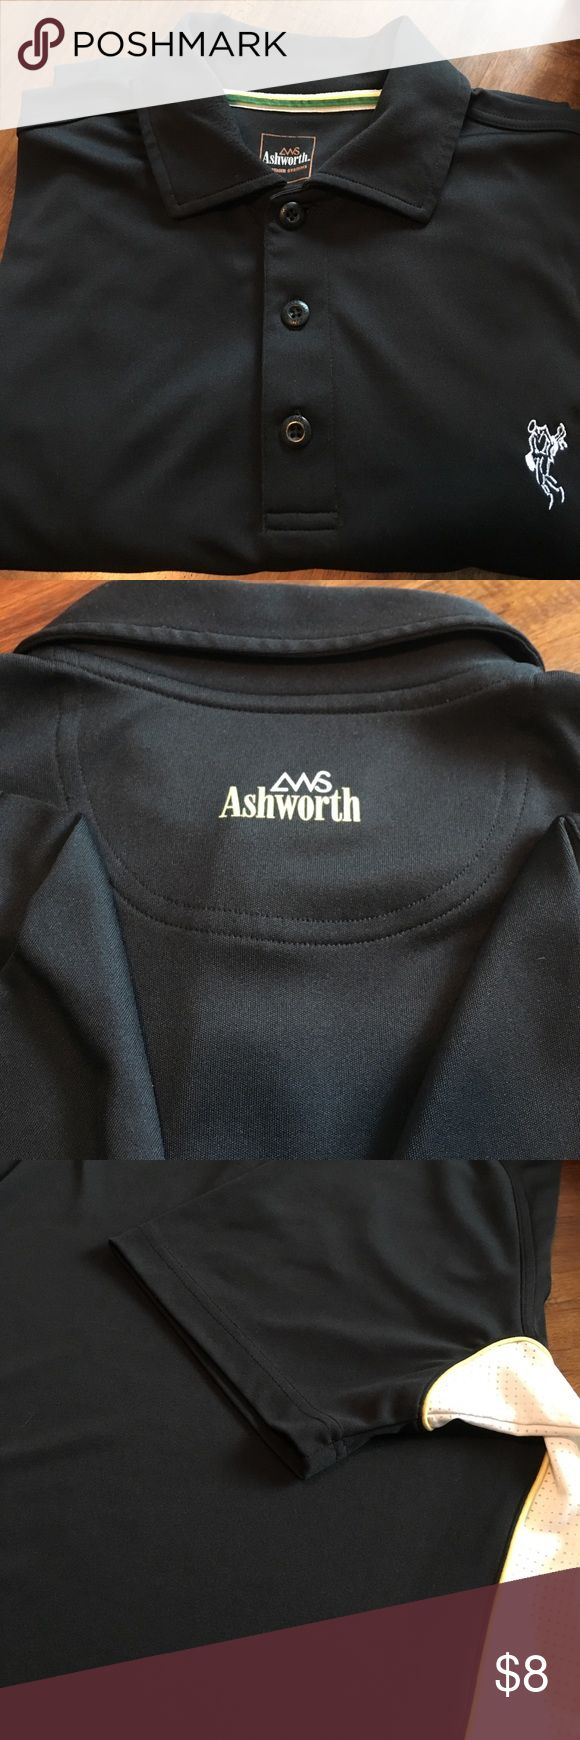 Ashworth Golf shirt Armpit to armpit is 21 inches. Length is 29 inches. Has a couple unnoticeable snags. Ashworth Shirts